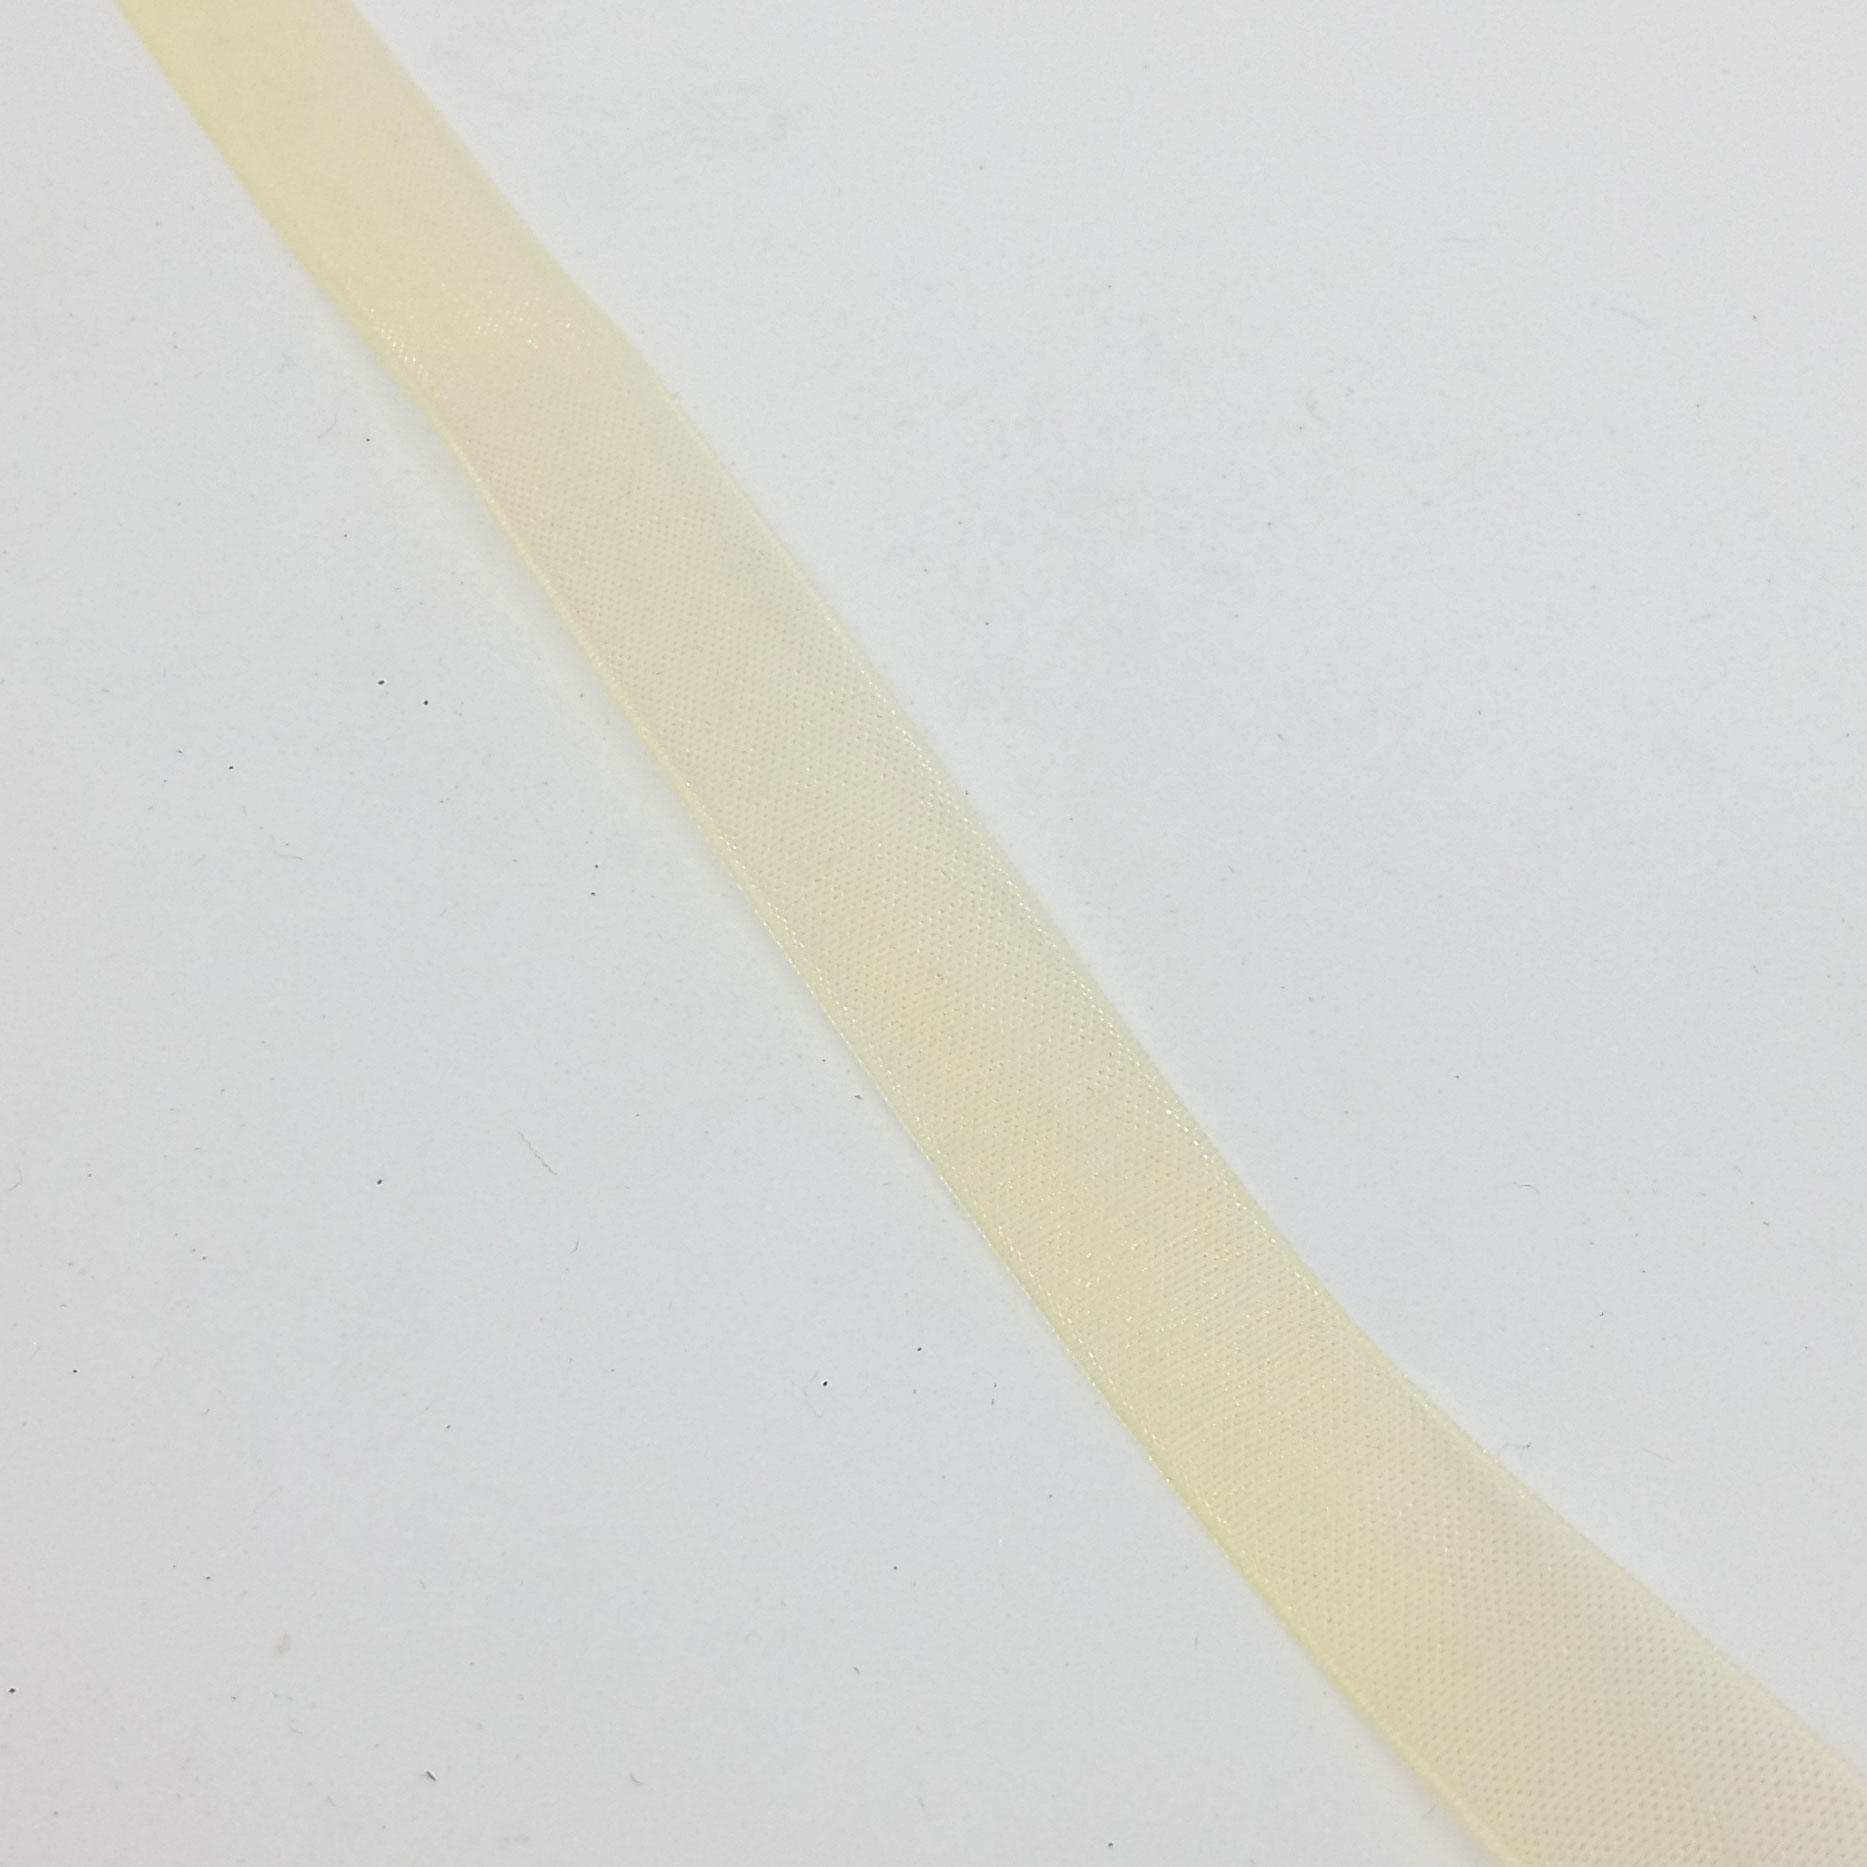 10mm Organza Ribbon -